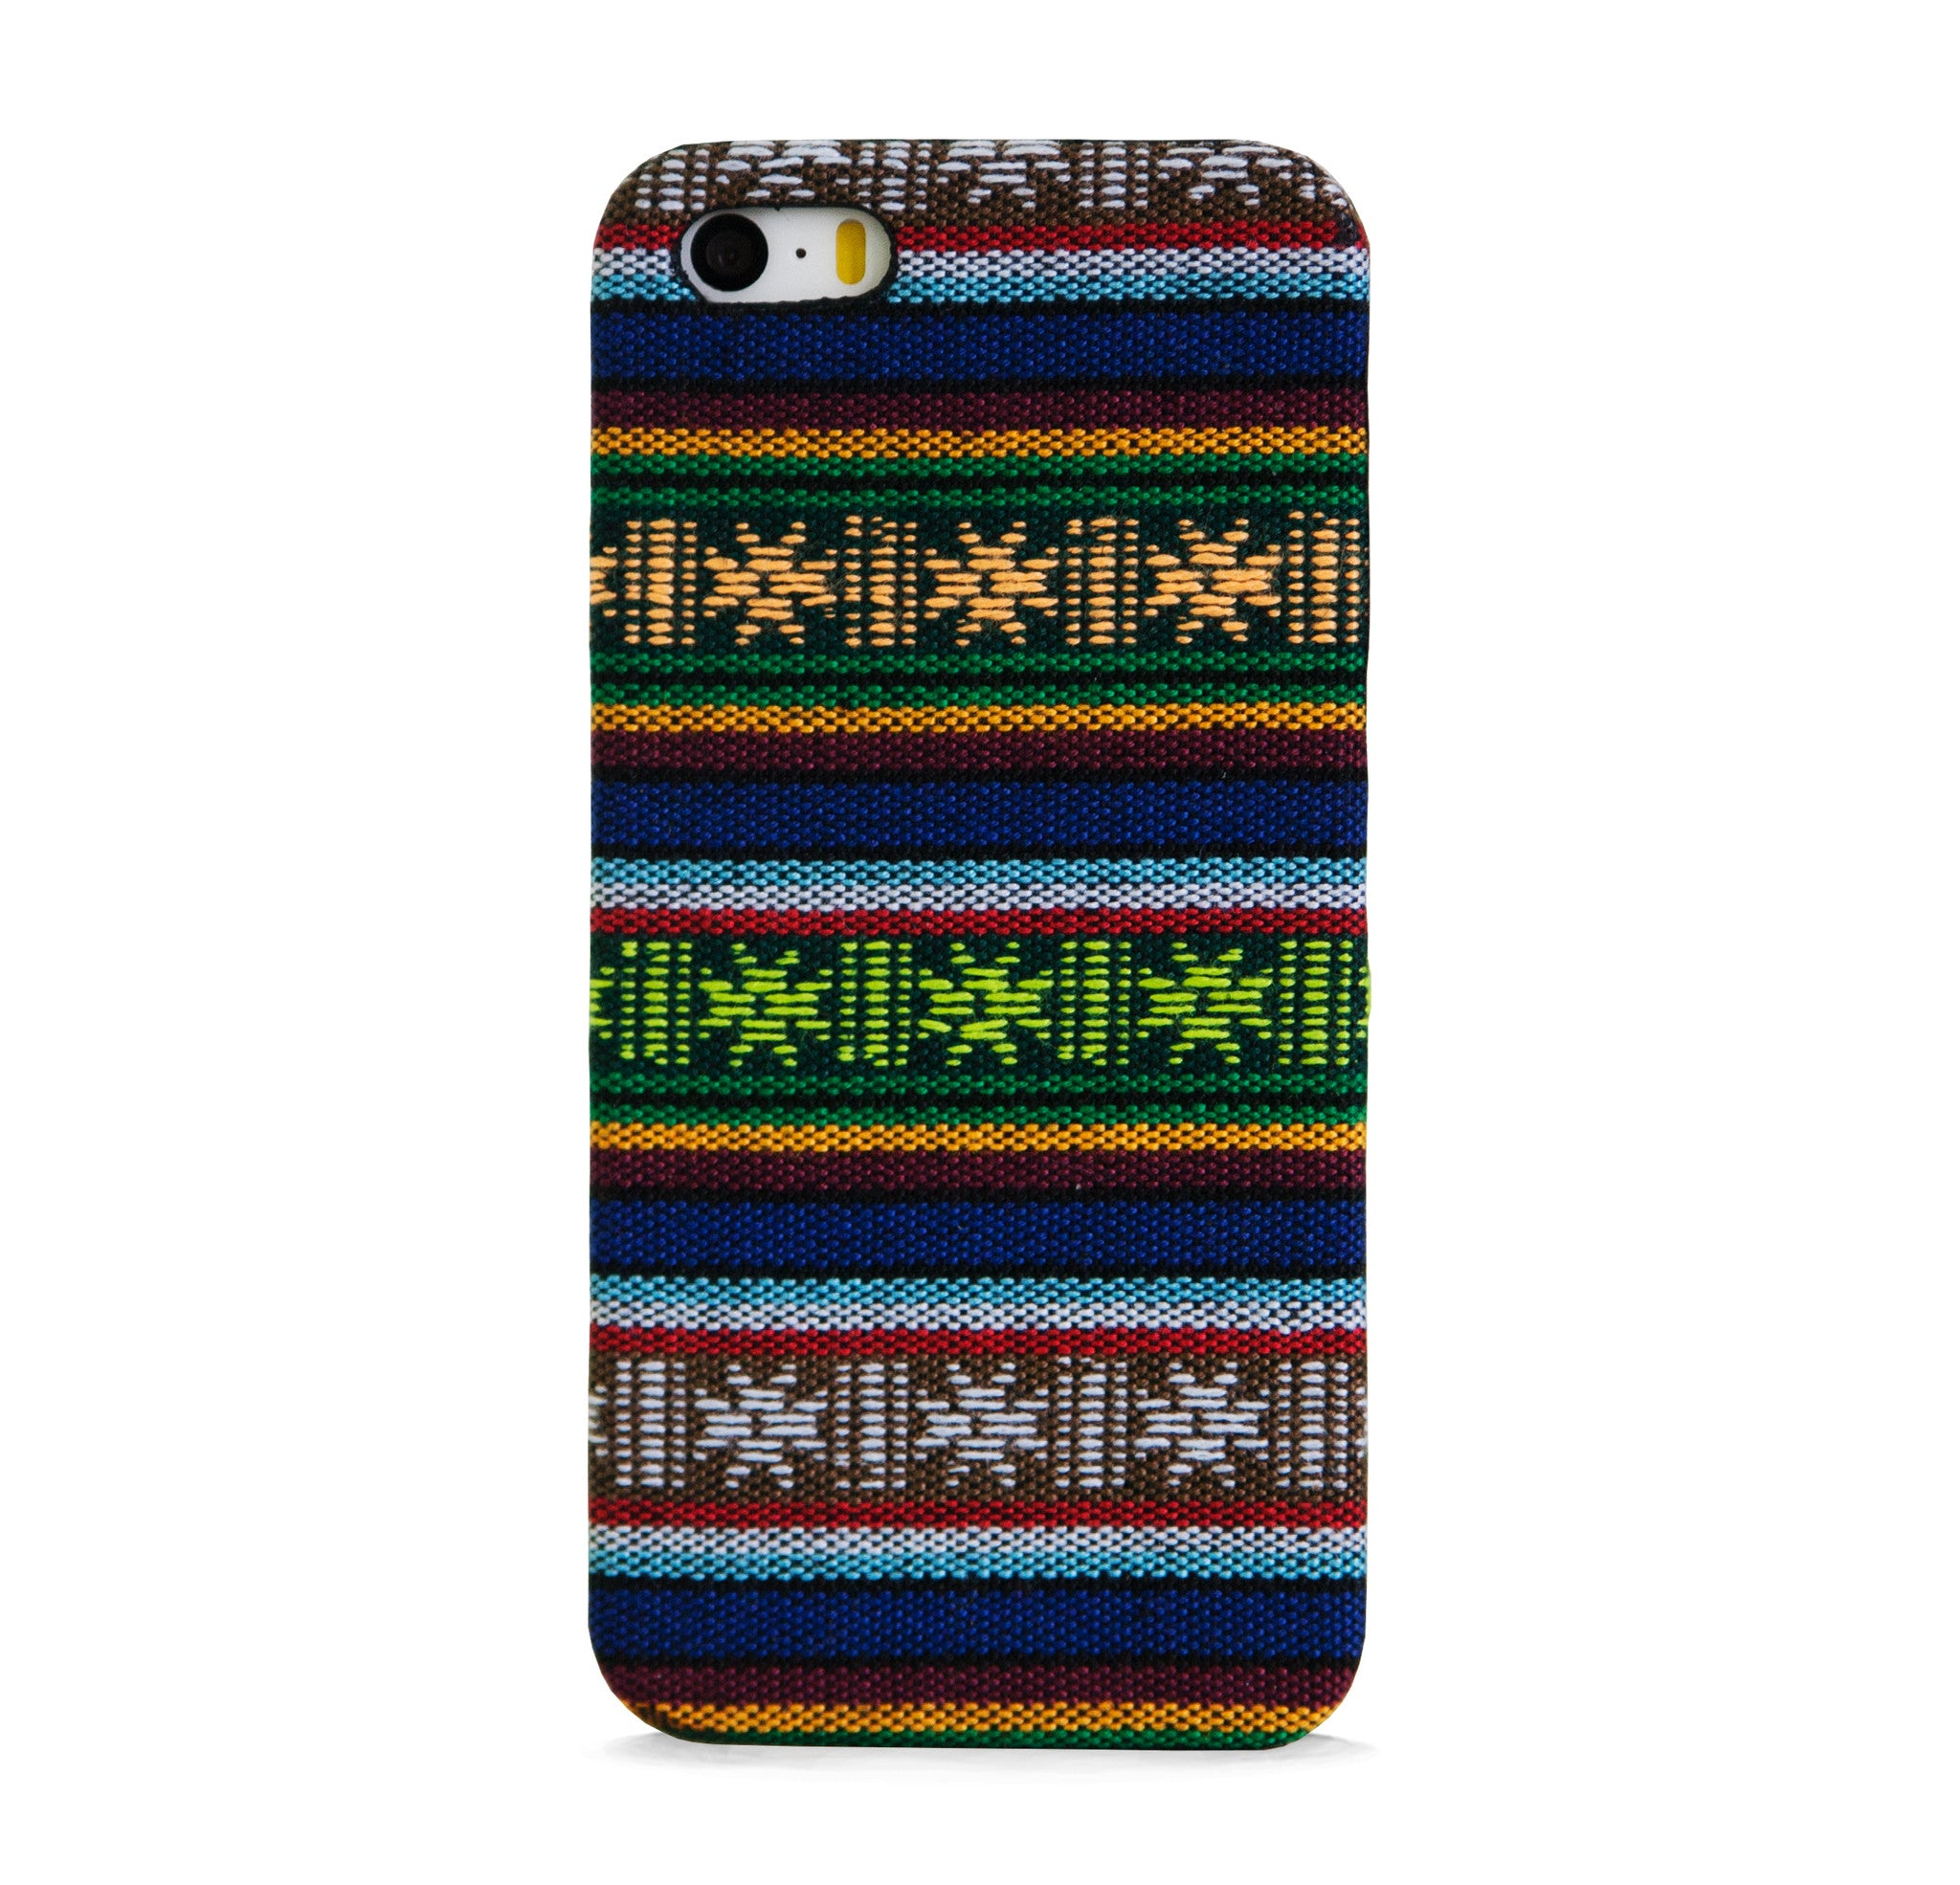 FABRIC WITH AZTEC PATTERN THIN IPHONE 5/5S CASE